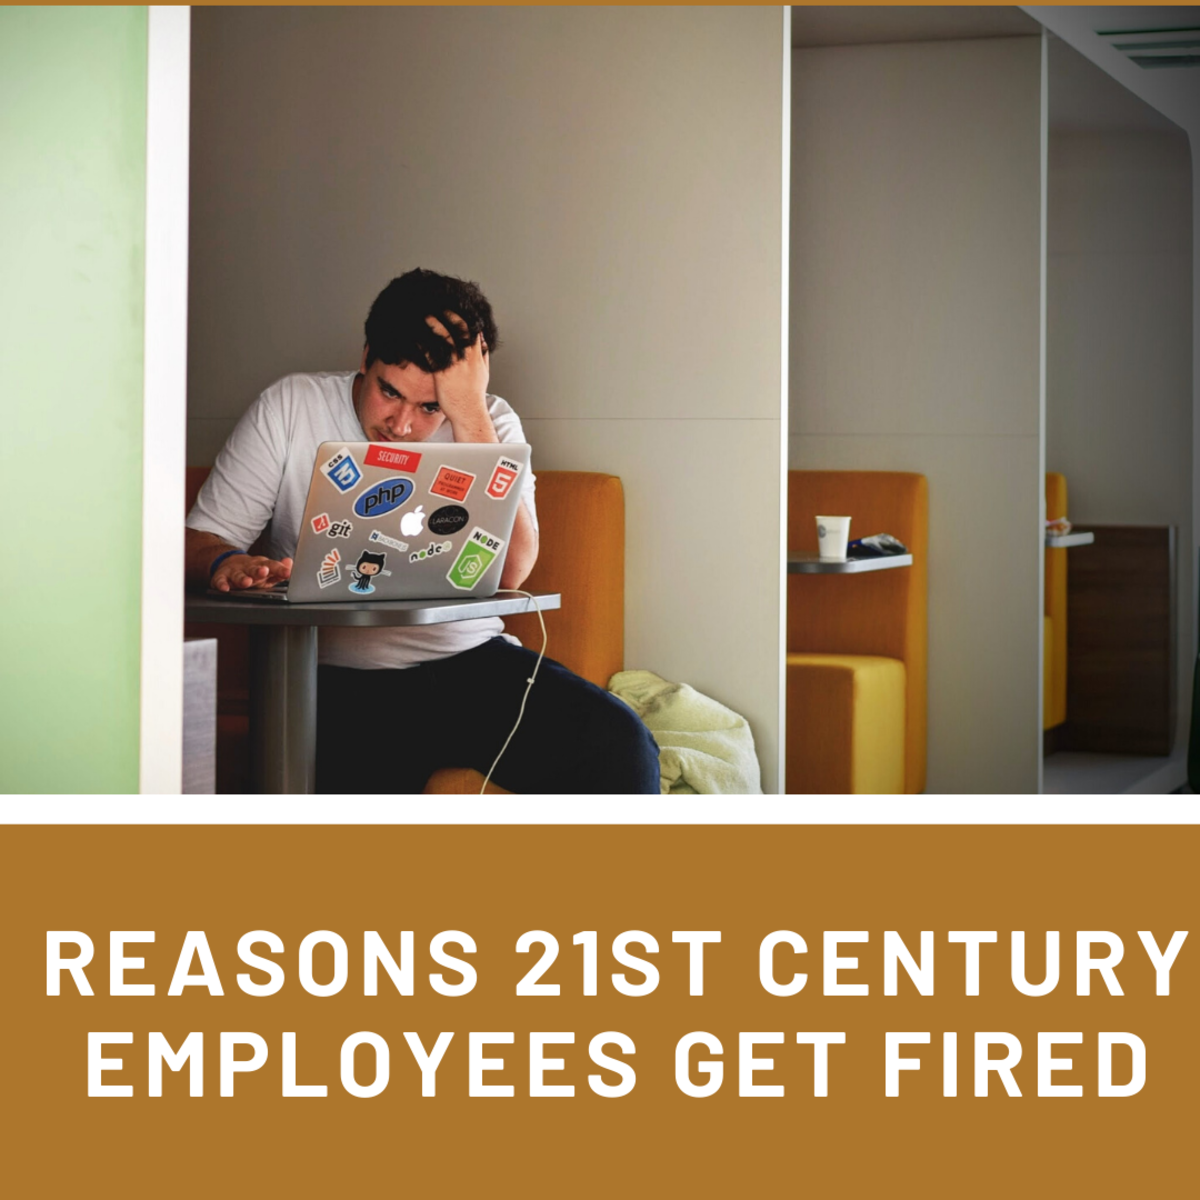 Top 10 Reasons 21st Century Employees Get Fired